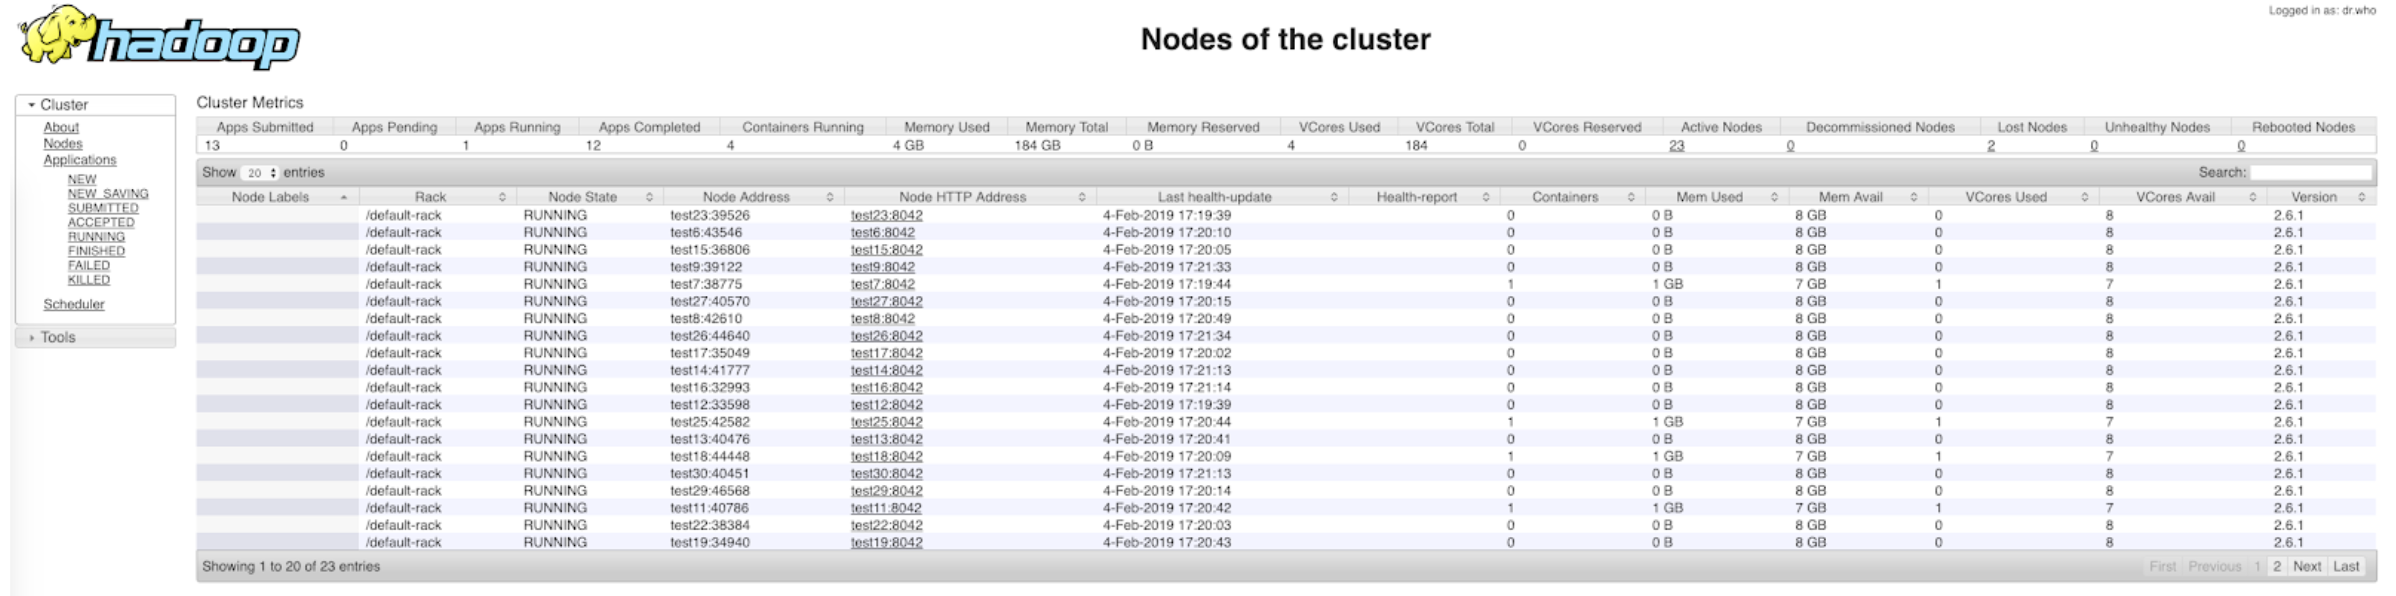 cluster-nodes-example